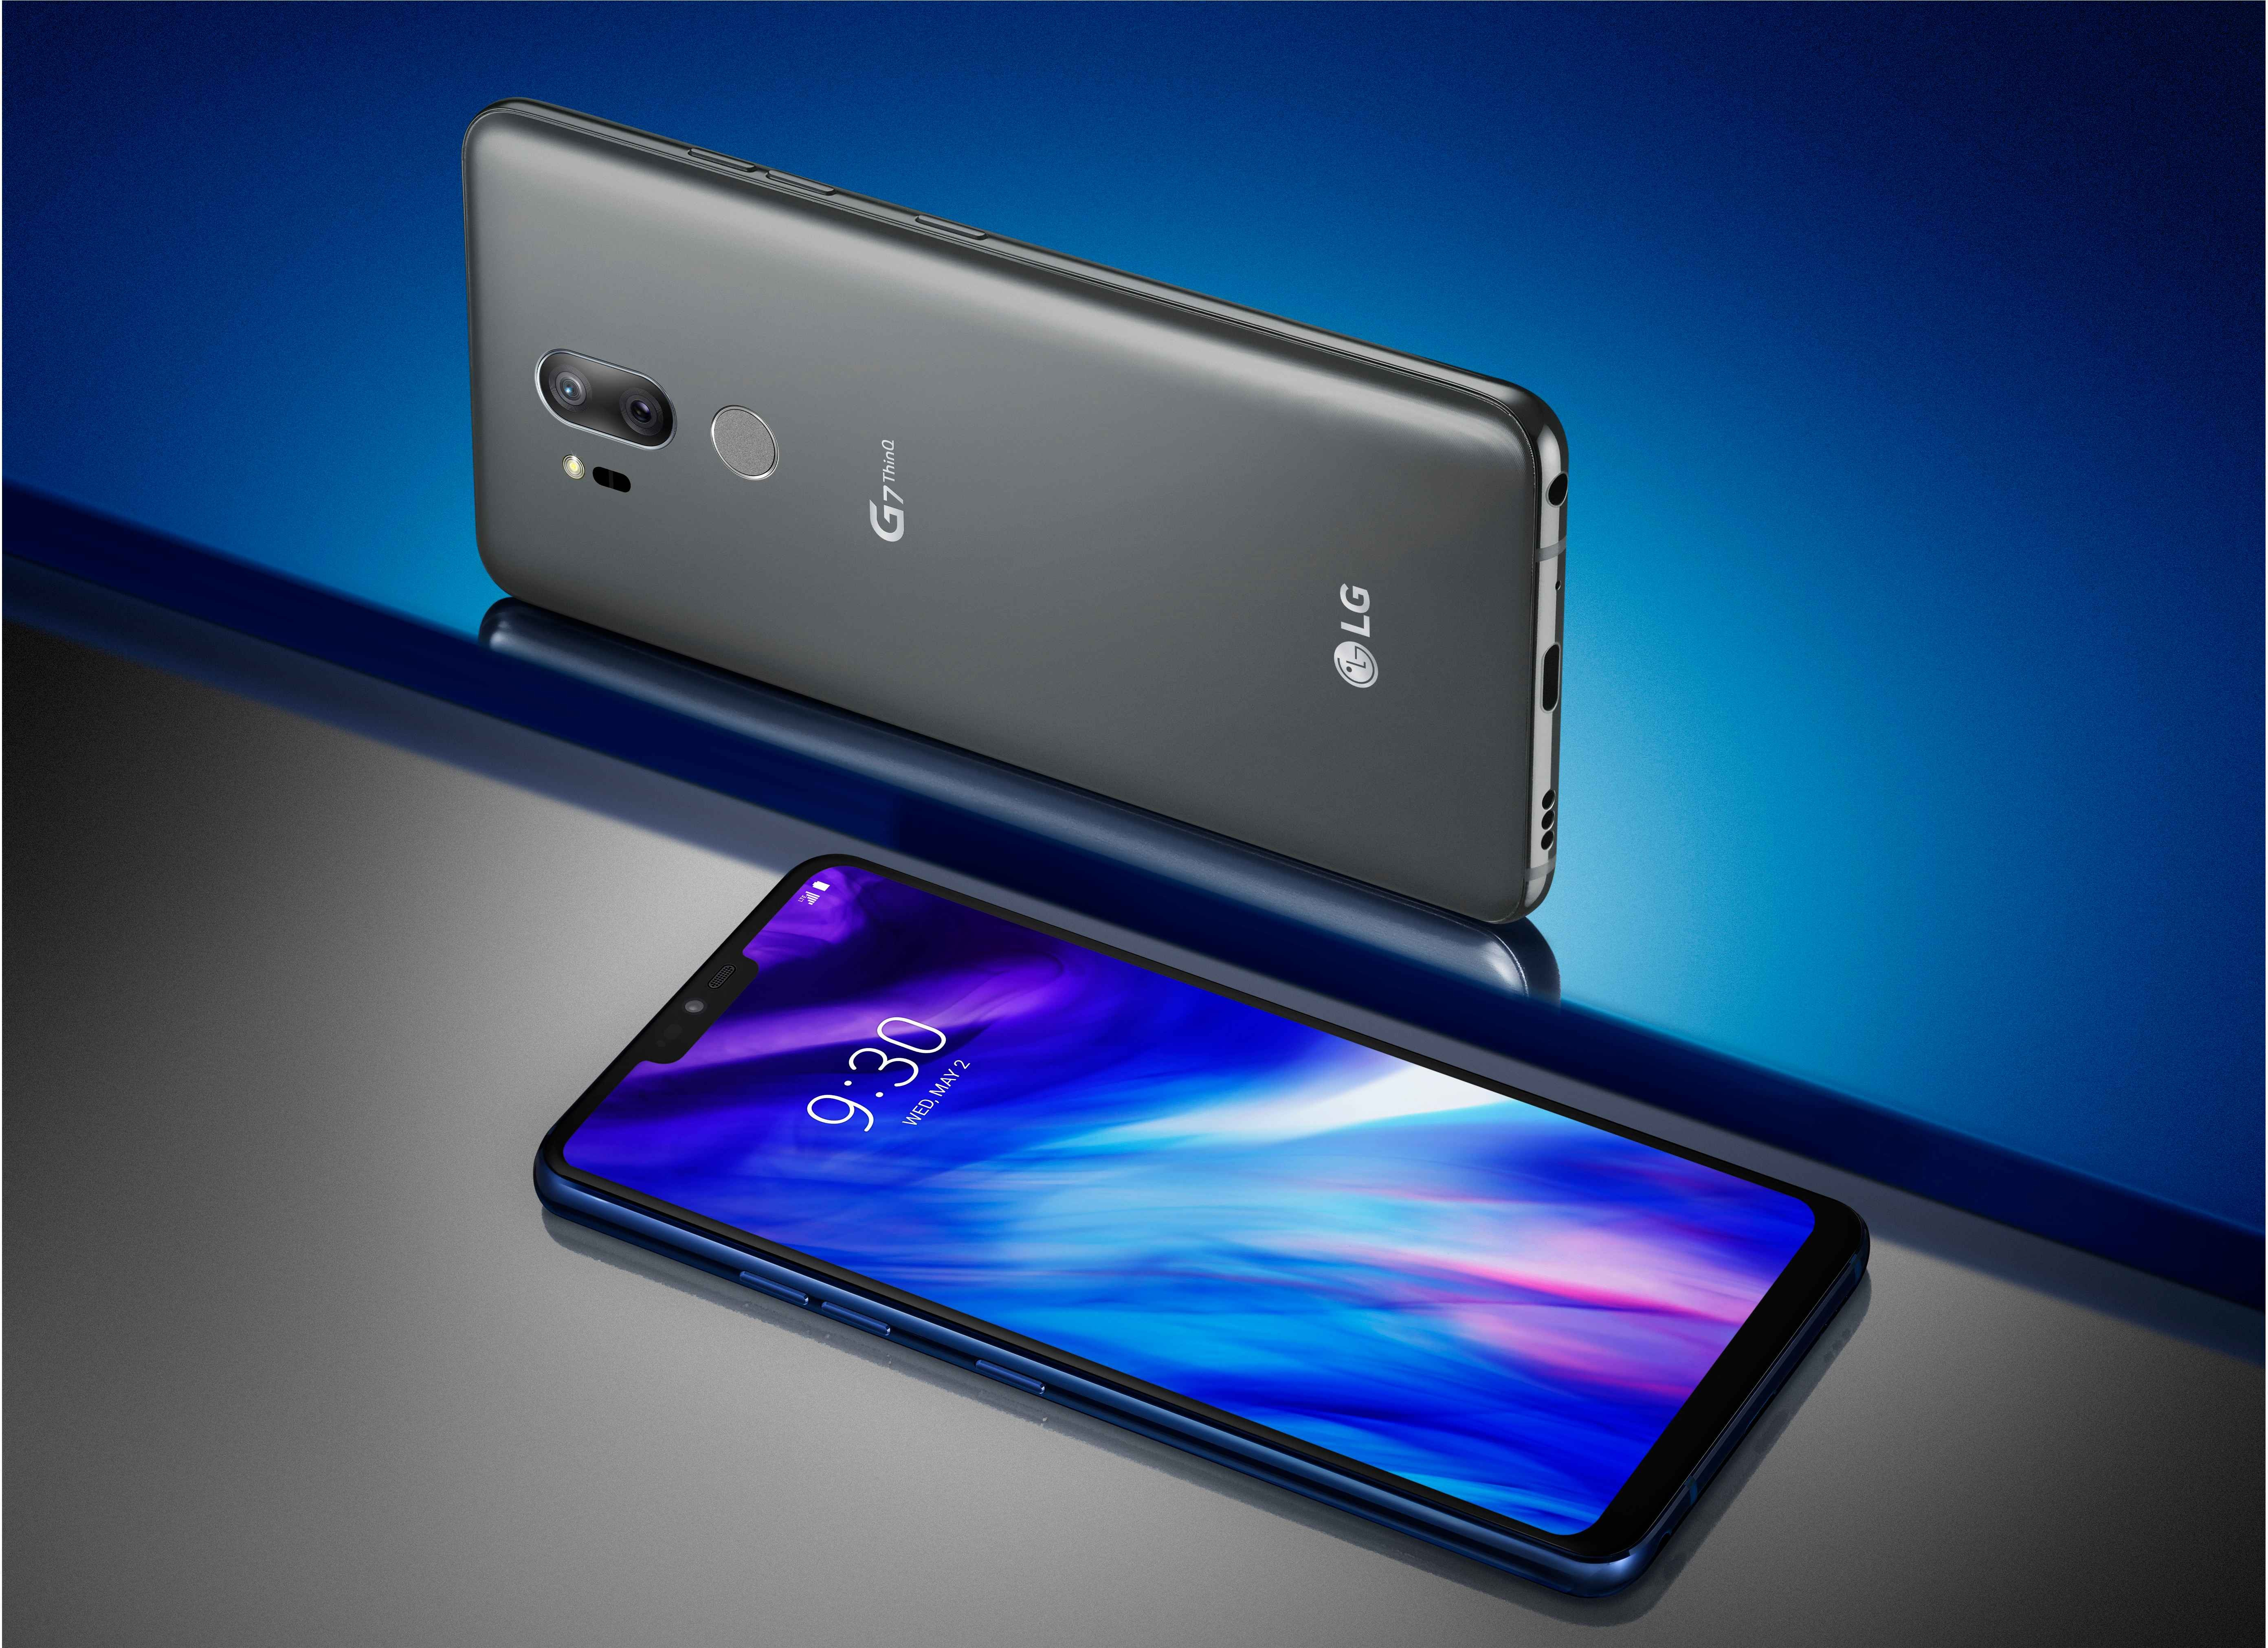 The front and rear view of the LG G7 ThinQ in New Platinum Gray against a gray and blue background